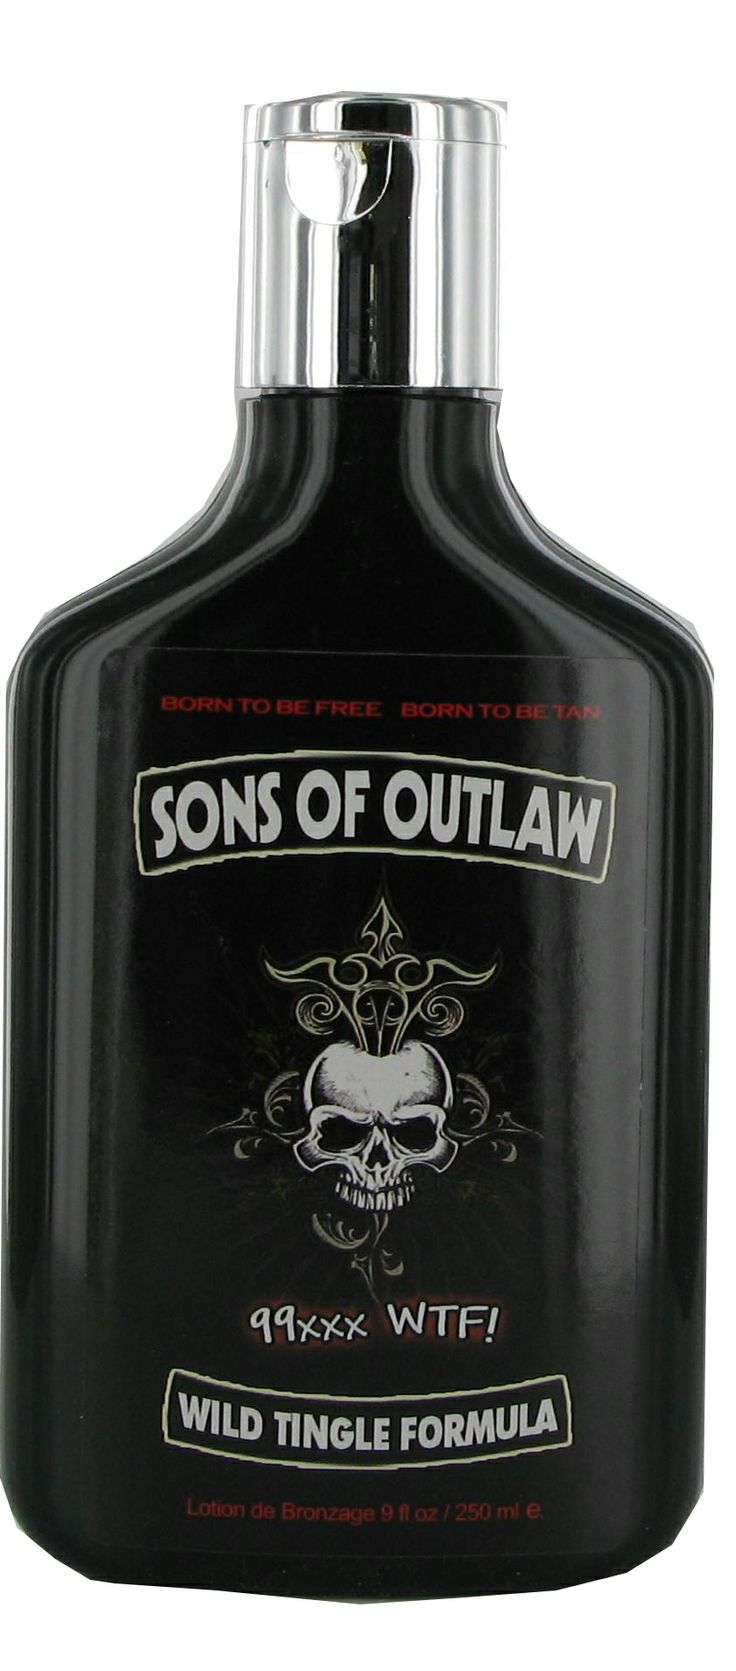 How many of you like Tingle Tanning Products? This is Sons of Outlaw and an excellent tanning lotion with a strong tingle. You will see results fast with Sons of Outlaw.